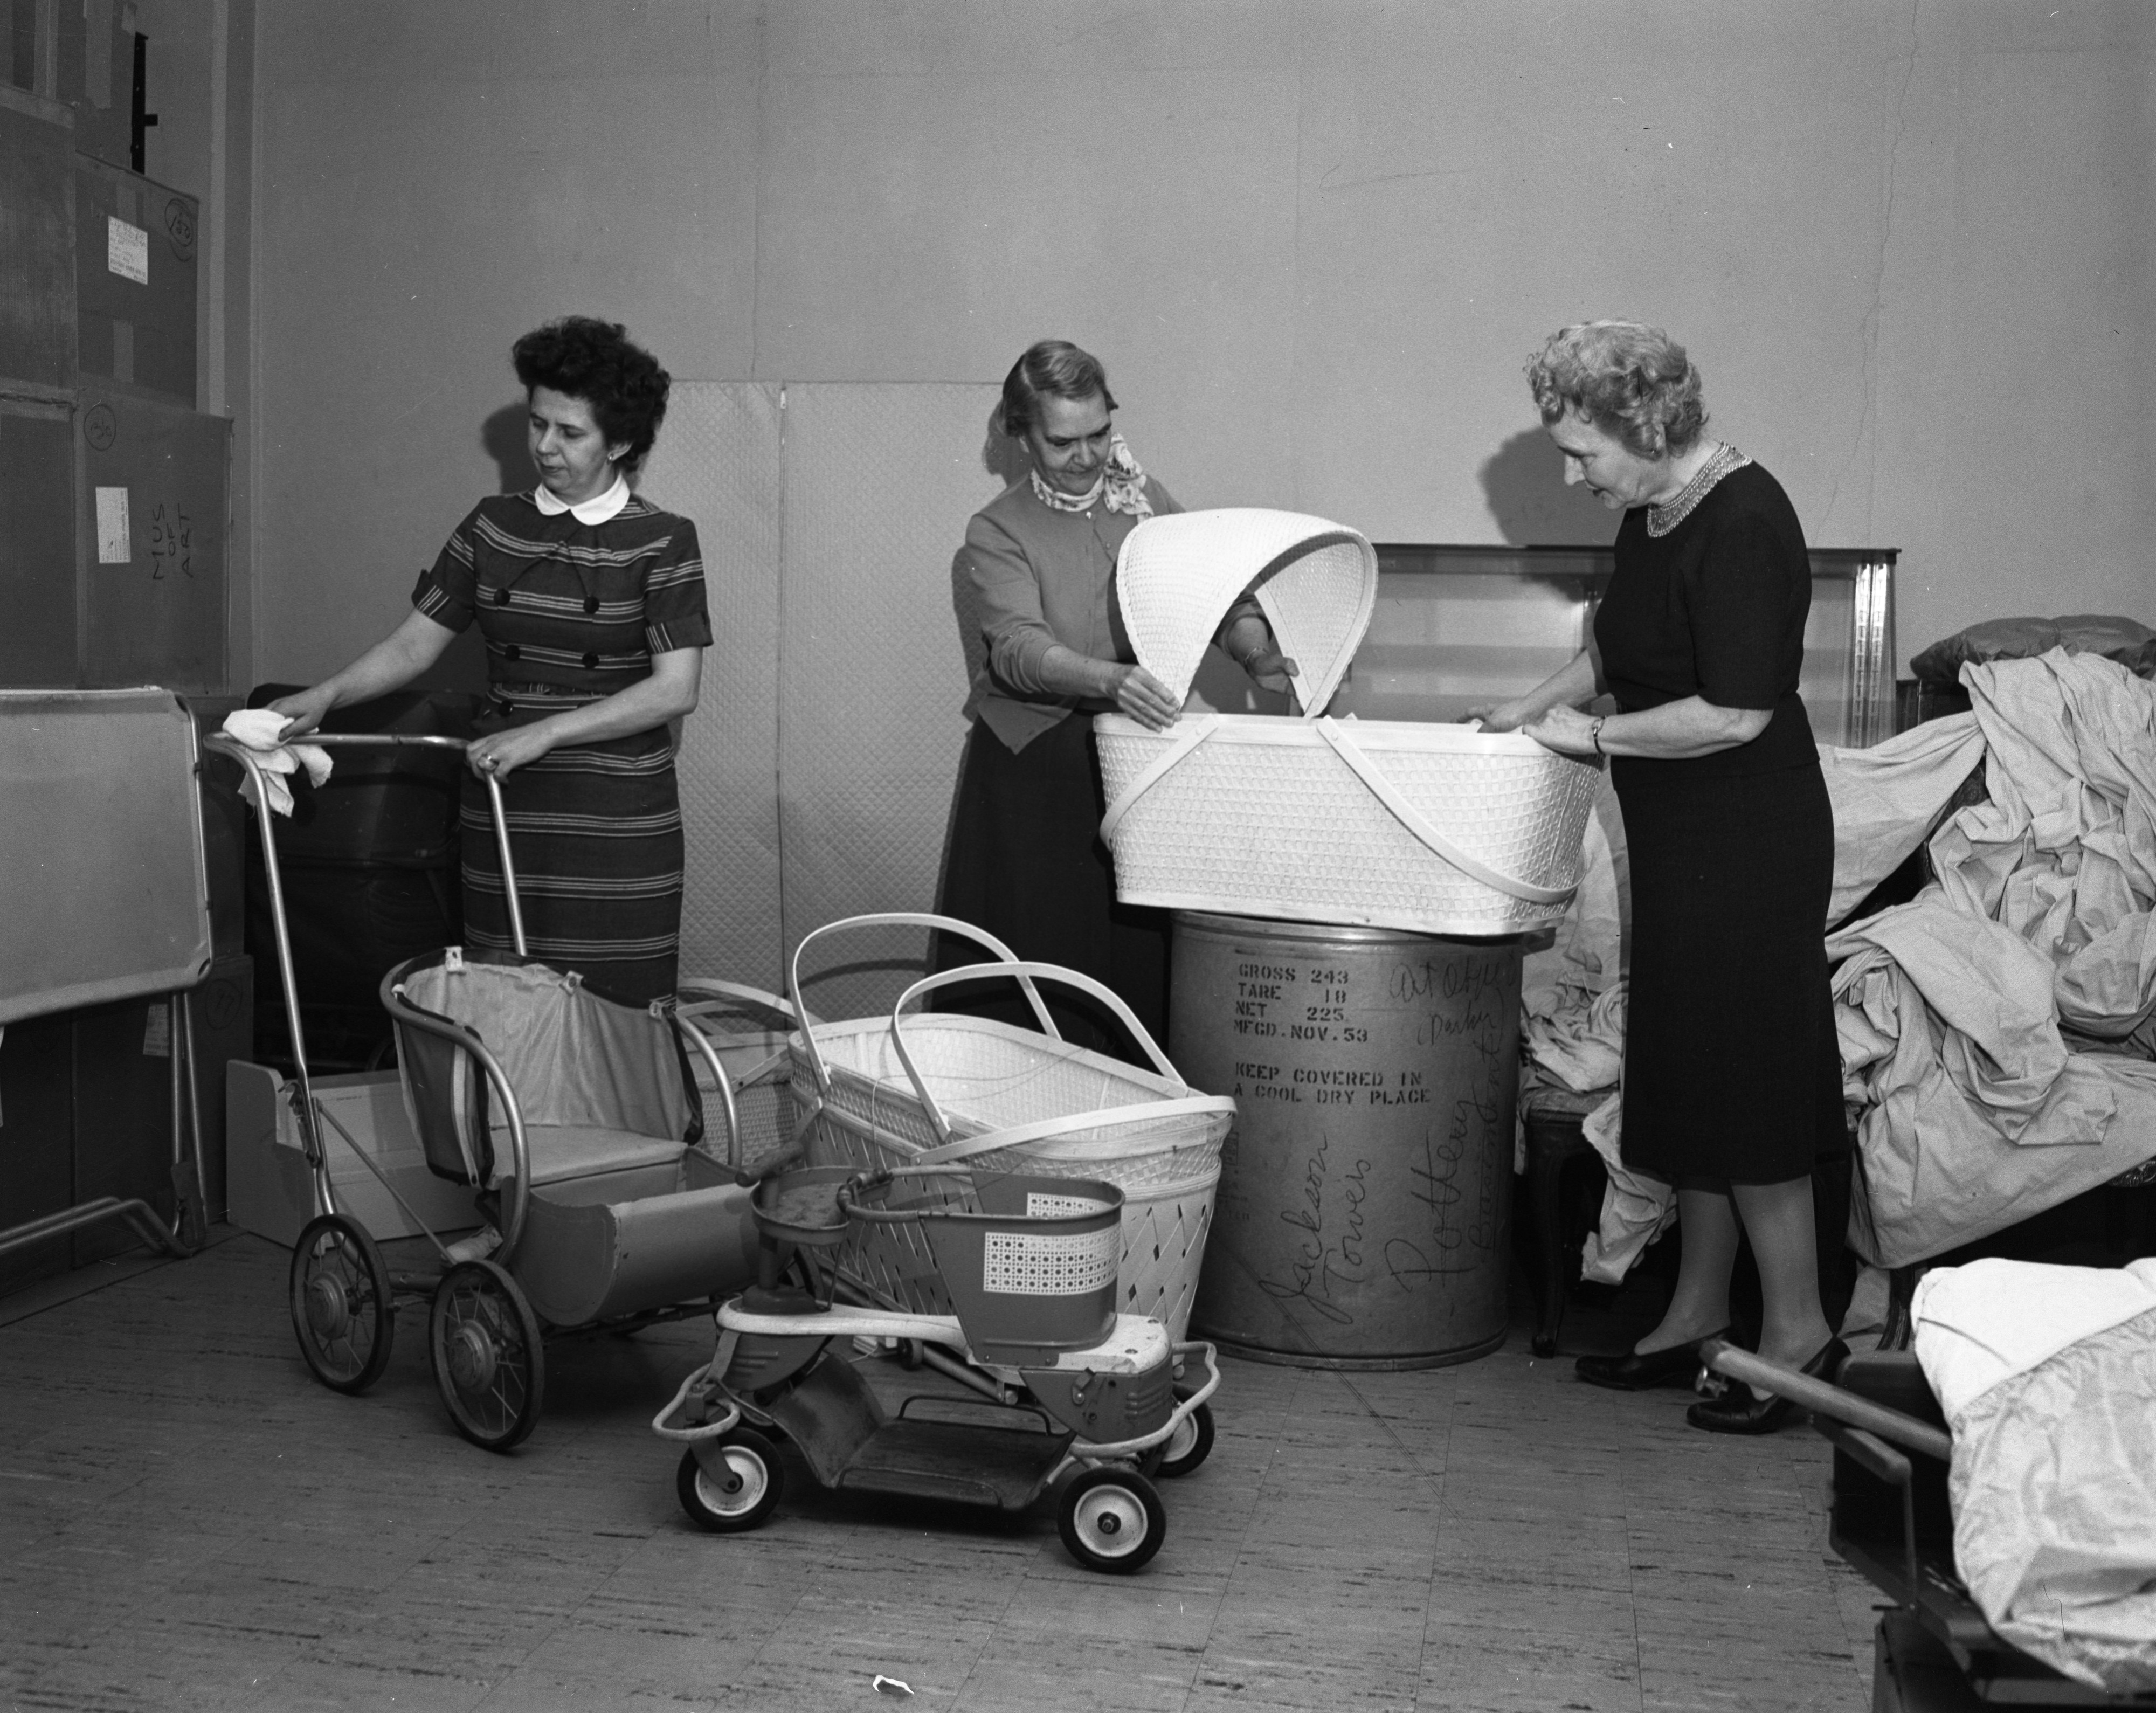 Members Of The Neighbors, Lending Service For UM Students, Help Prepare To Move To Madelon Pound House, January 27, 1960 image